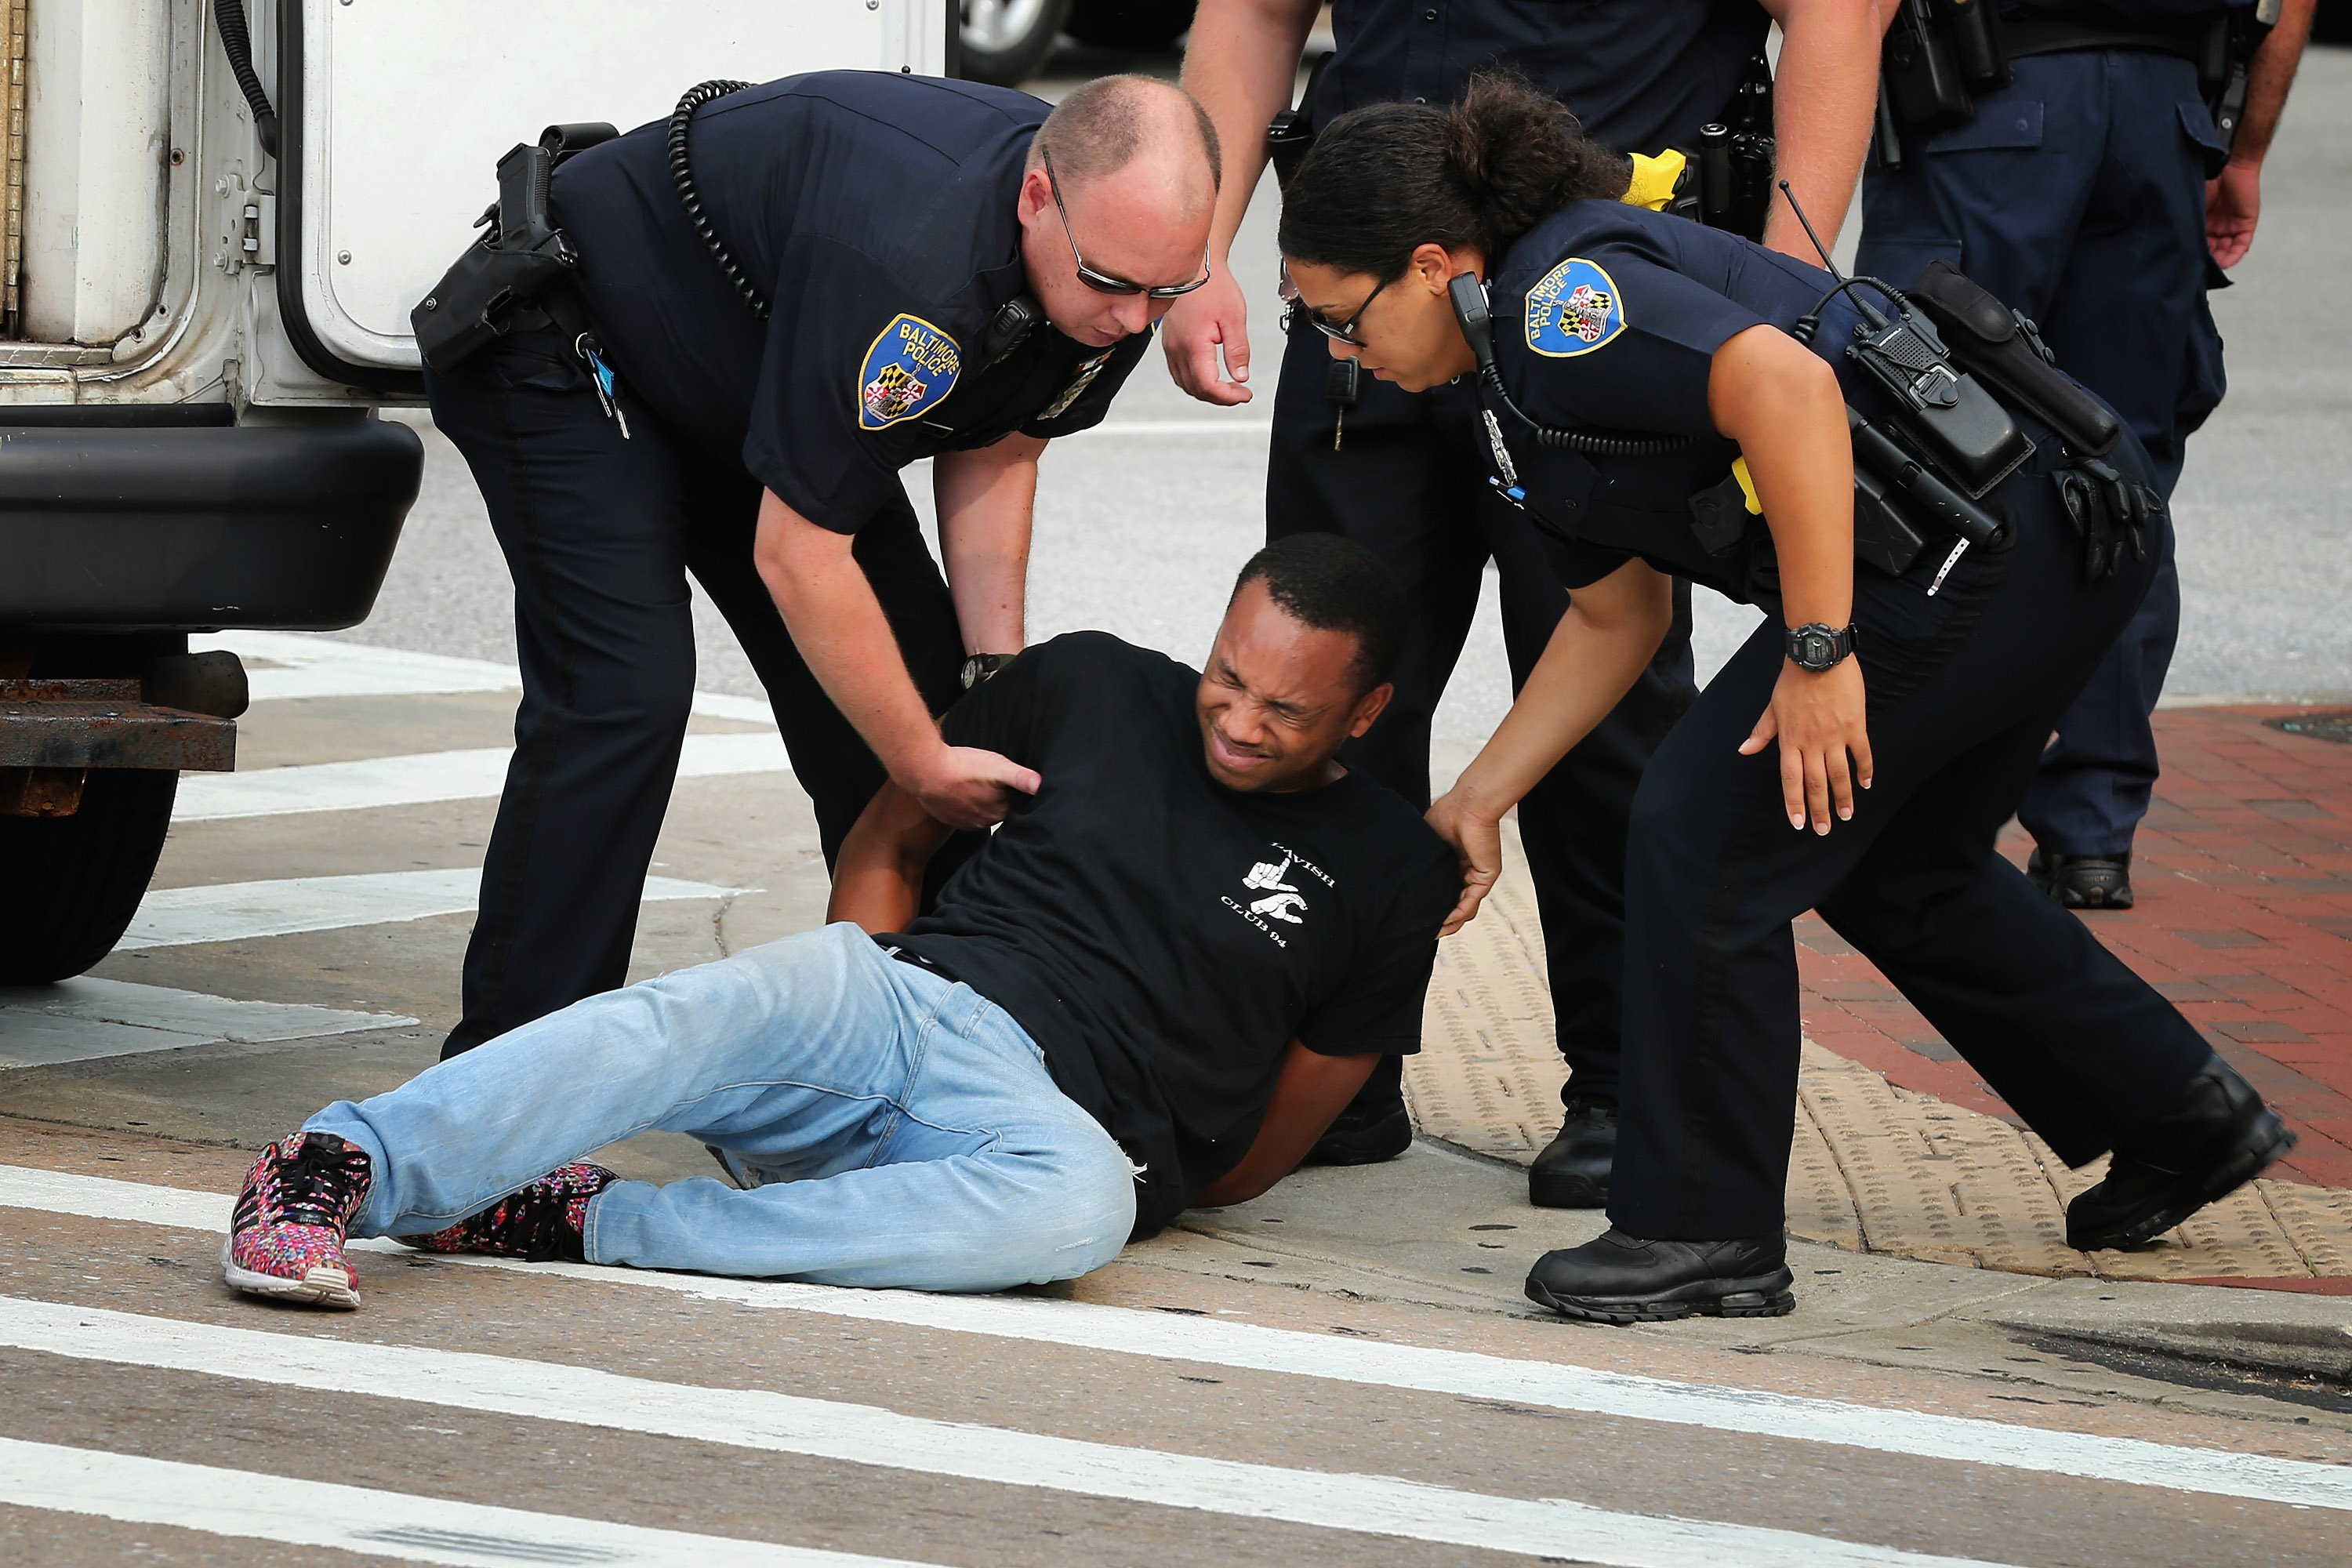 Baltimore protest leaders targeted for repression as movement continues